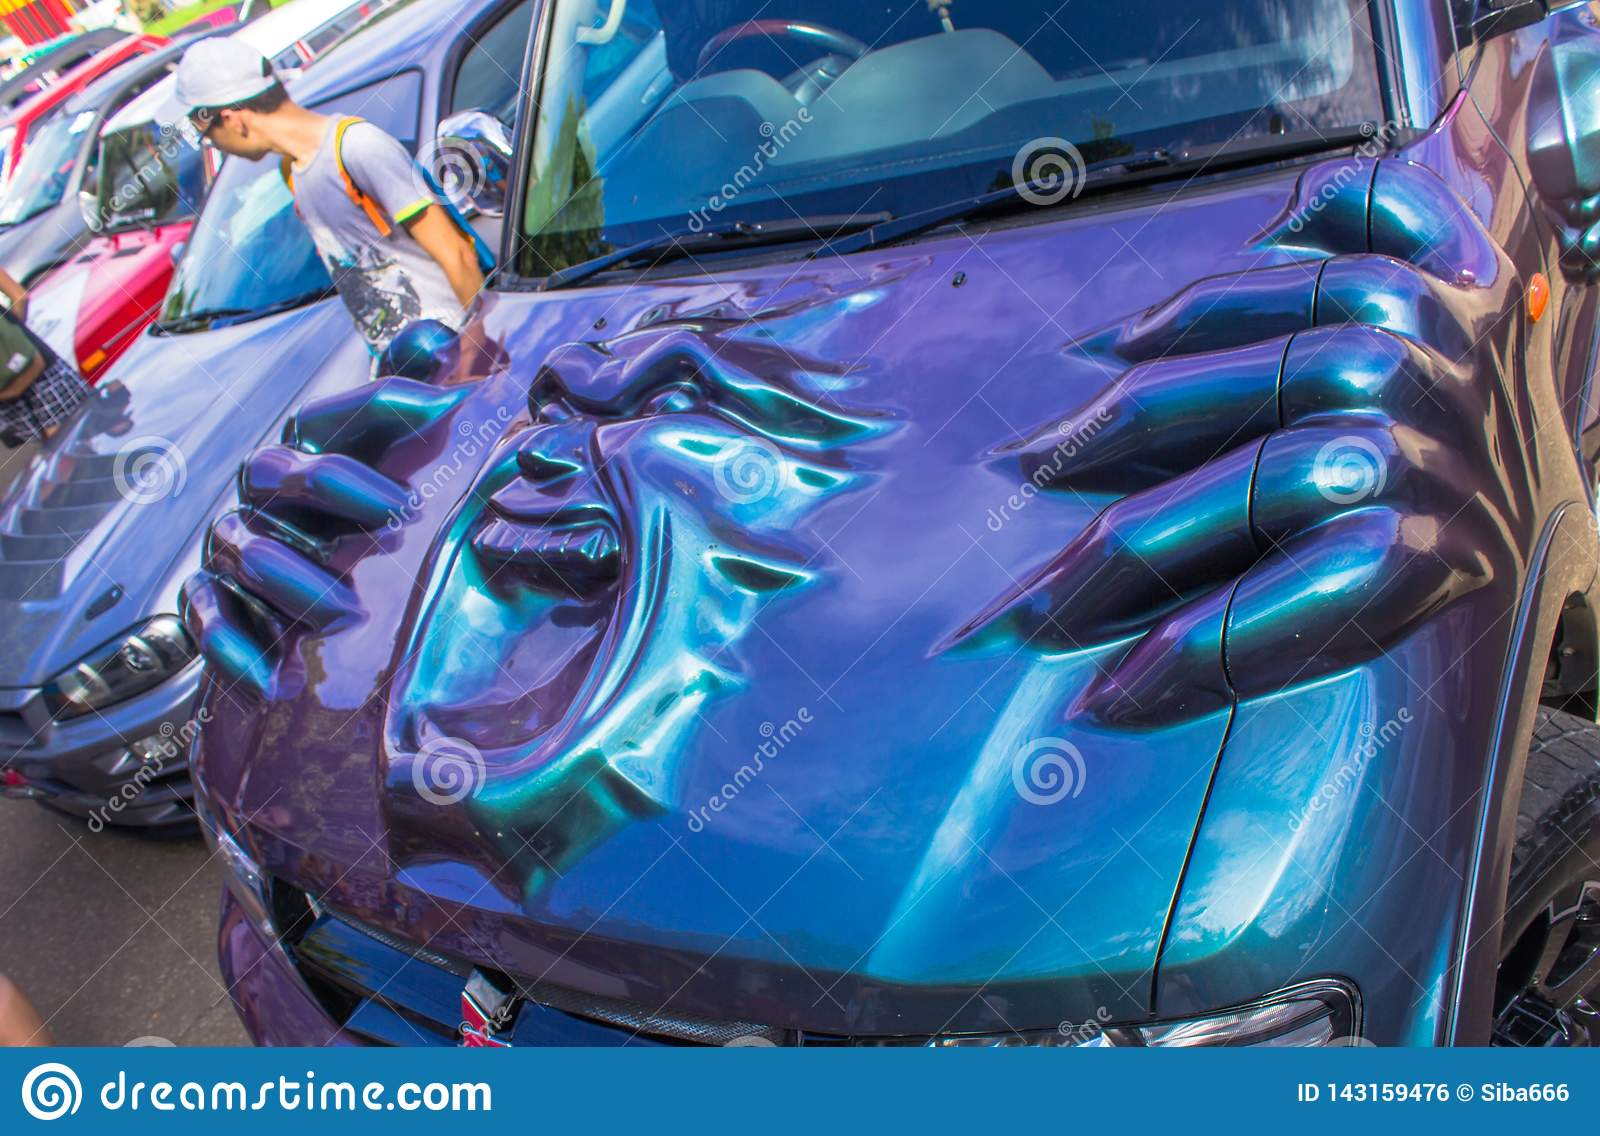 Exhibition of cars in the summer in Komsomolsk-on-Amur retro cars and tuned cars